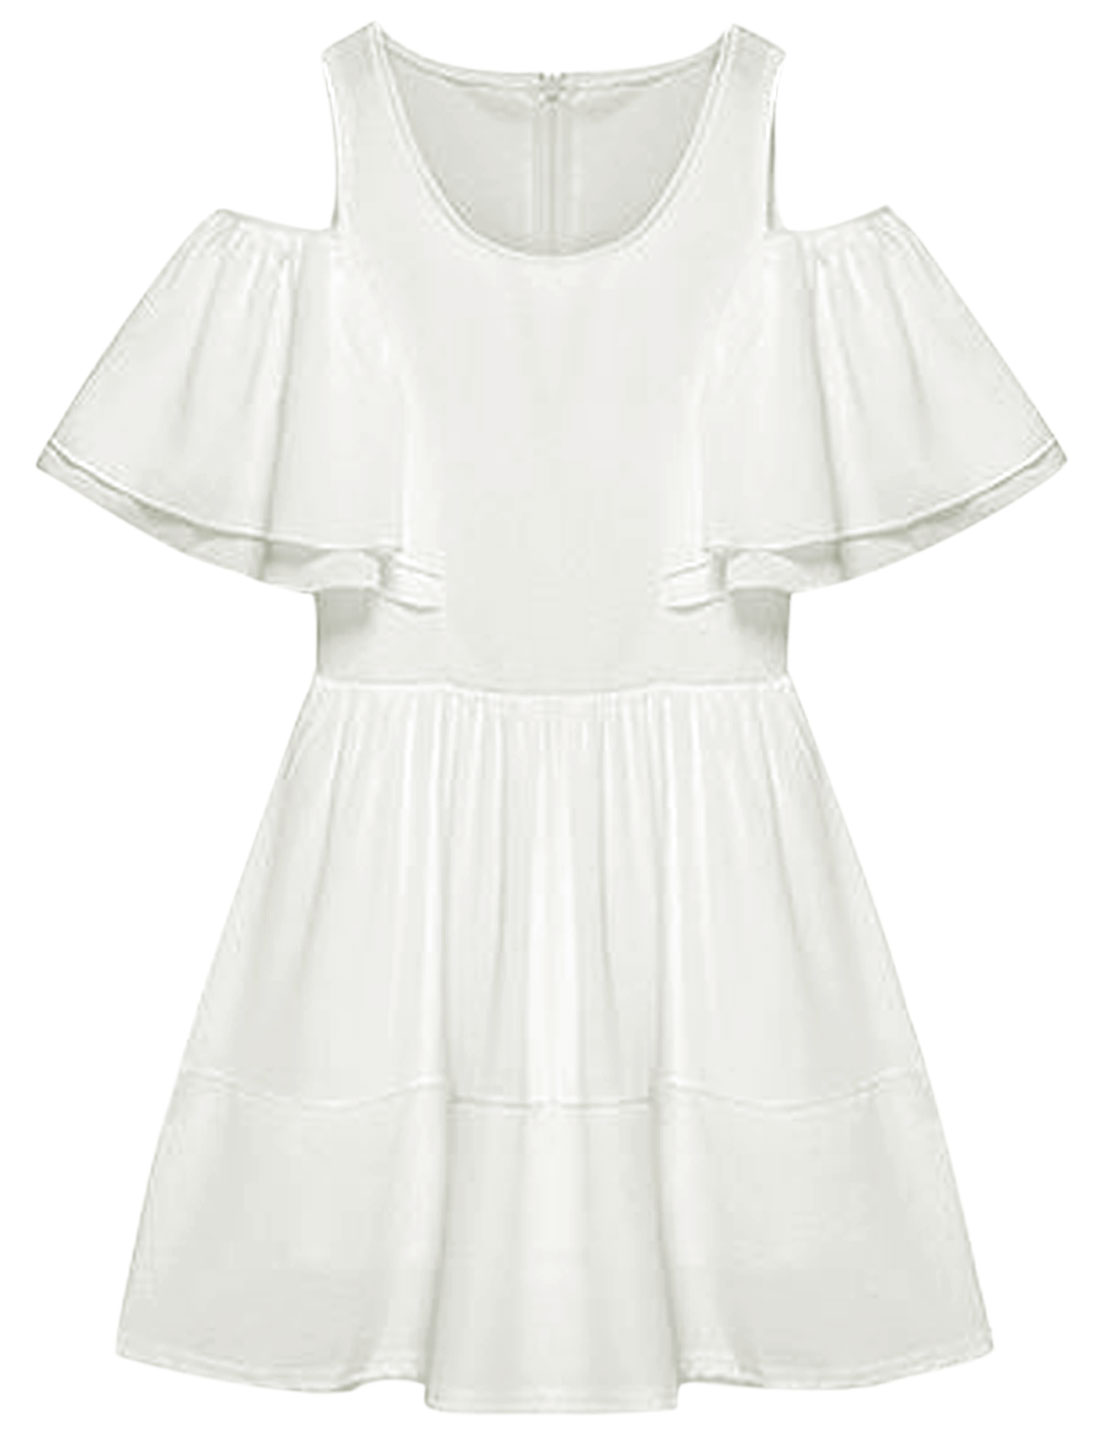 Women Round Neck Chiffon Panel Cut Out Shoulder A-Line Dress White S